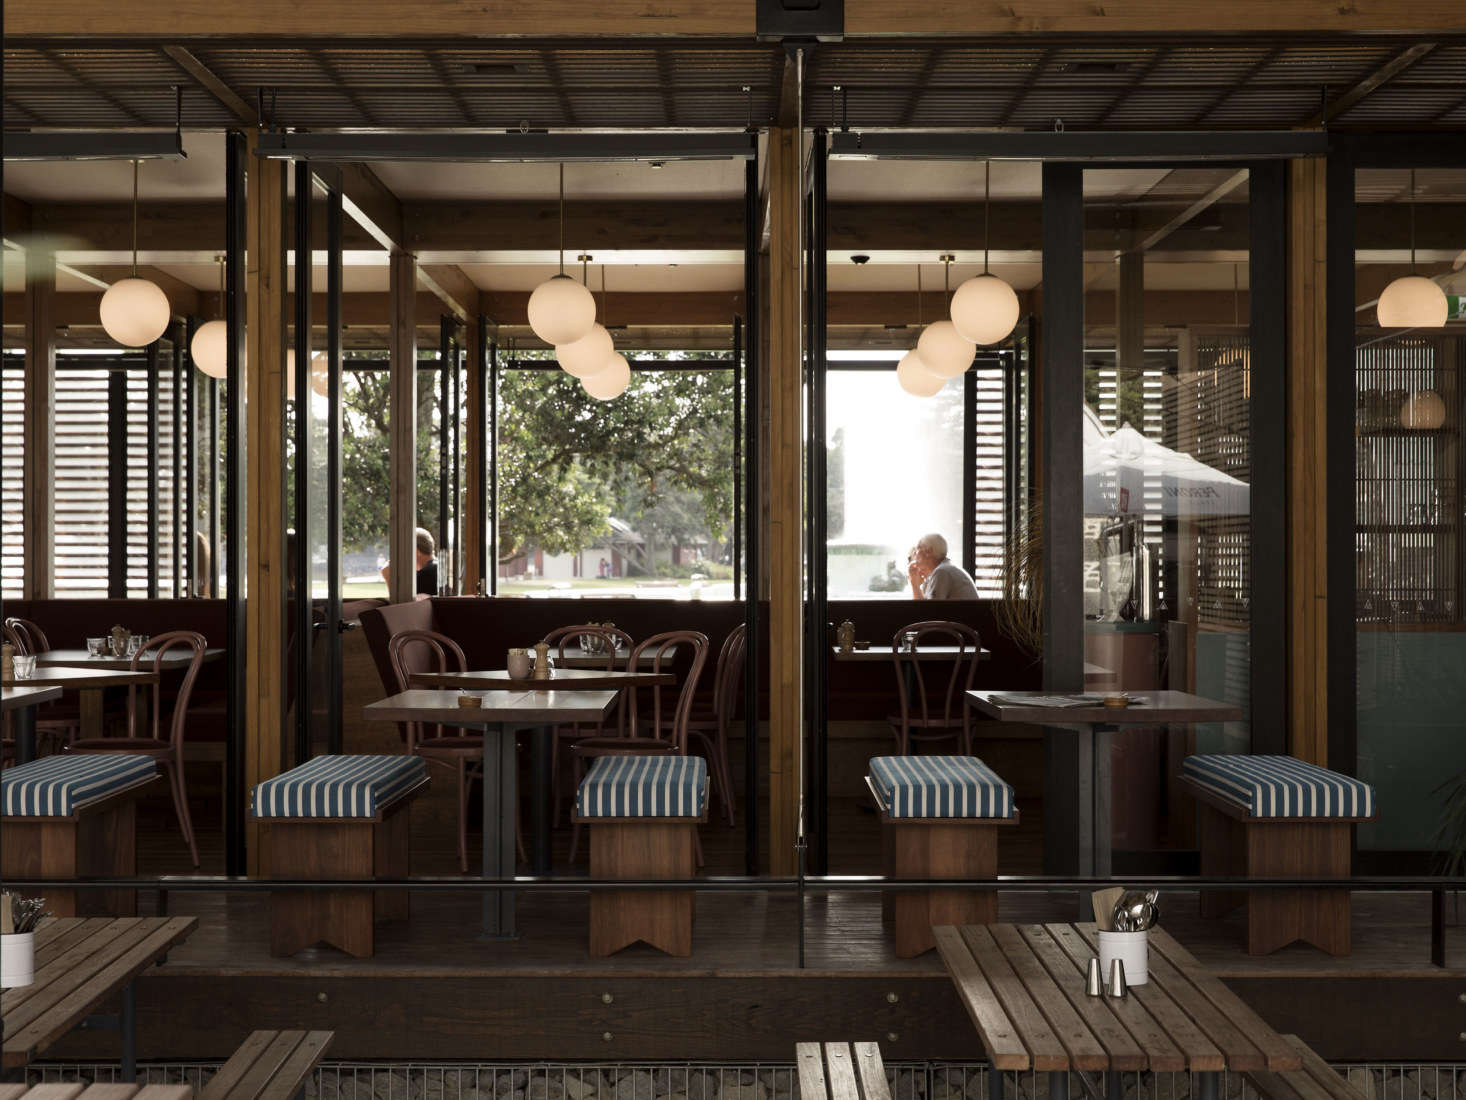 The pavilion windows open up in warmer months. The interior timber is Spotted Gum, facing beams are laminated pine, and the deck is Kwlia decking timber.